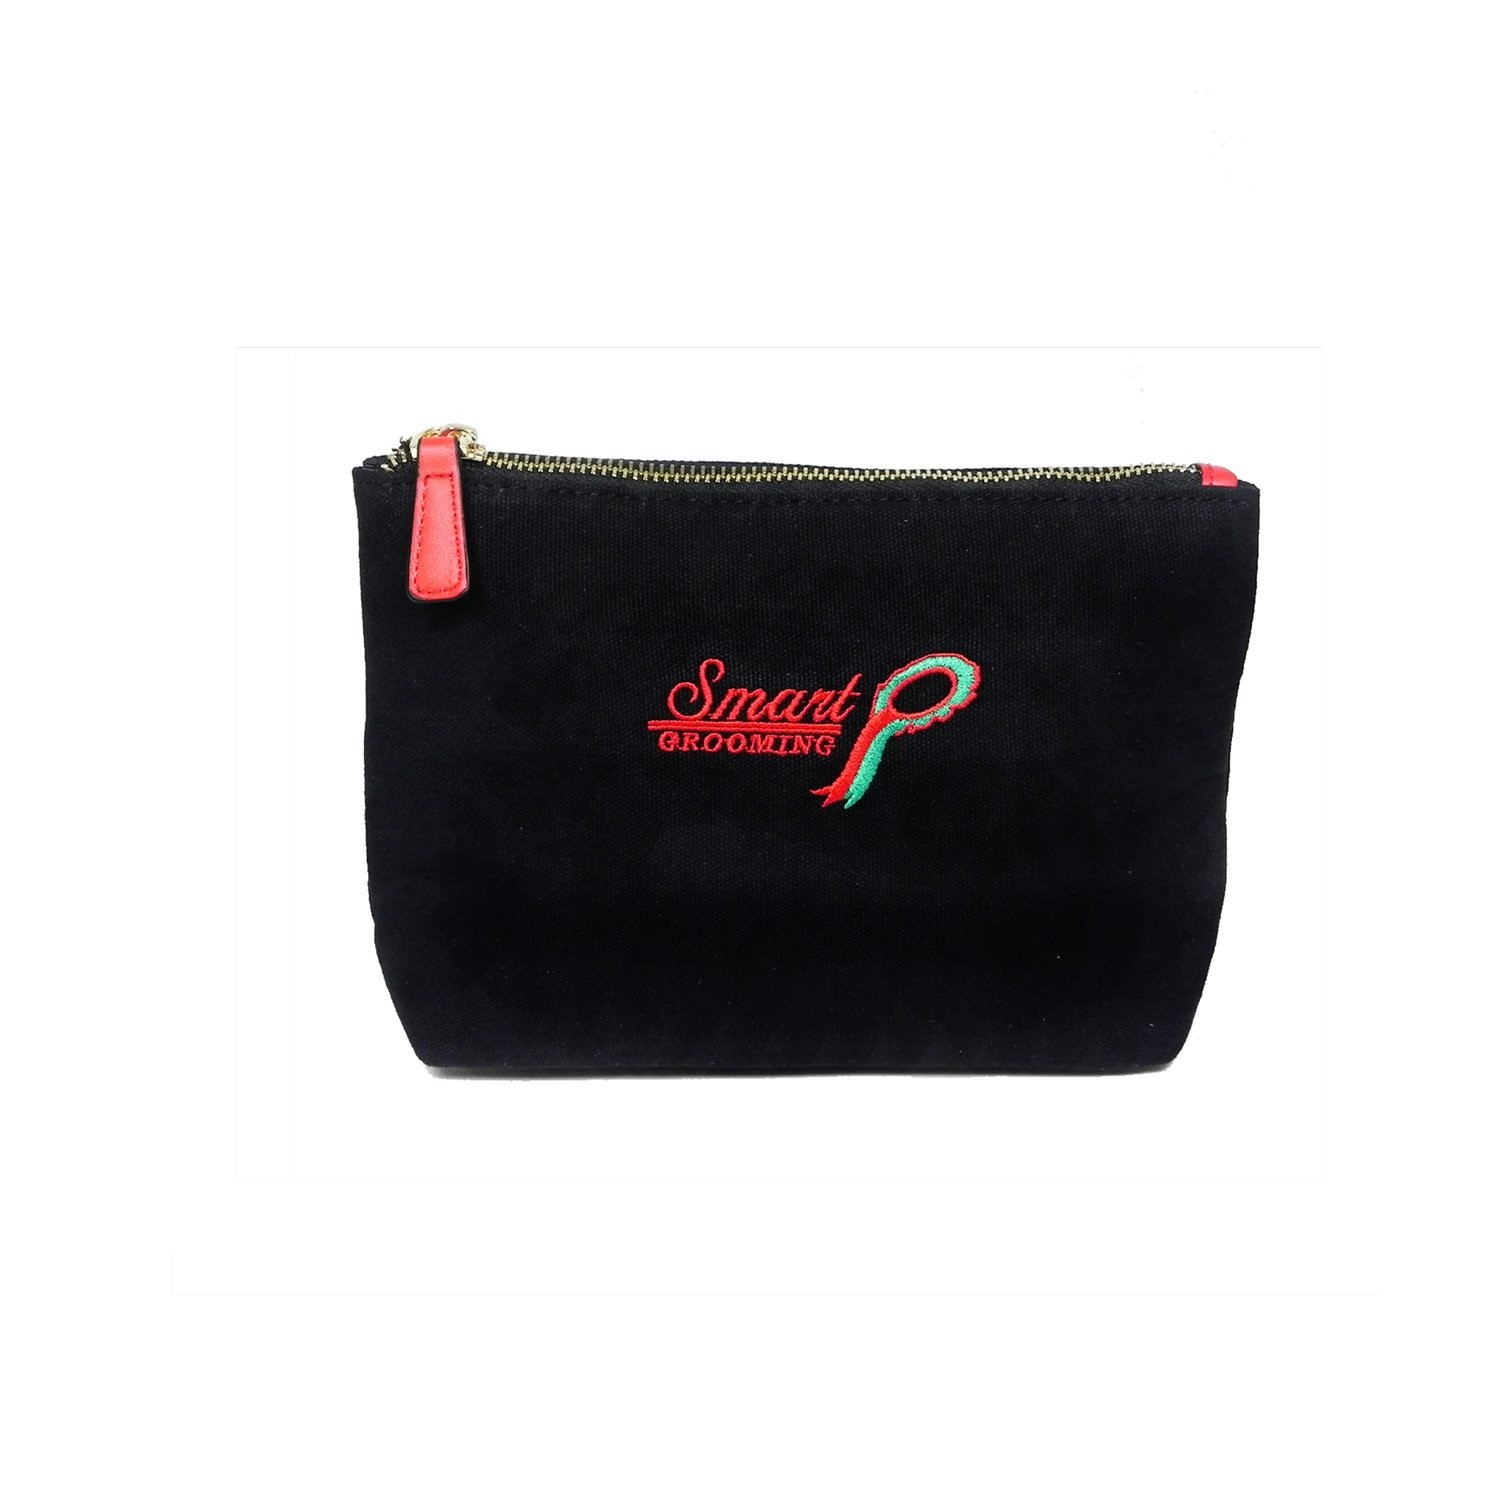 Smart Grooming Accessories Pouch (One Size)